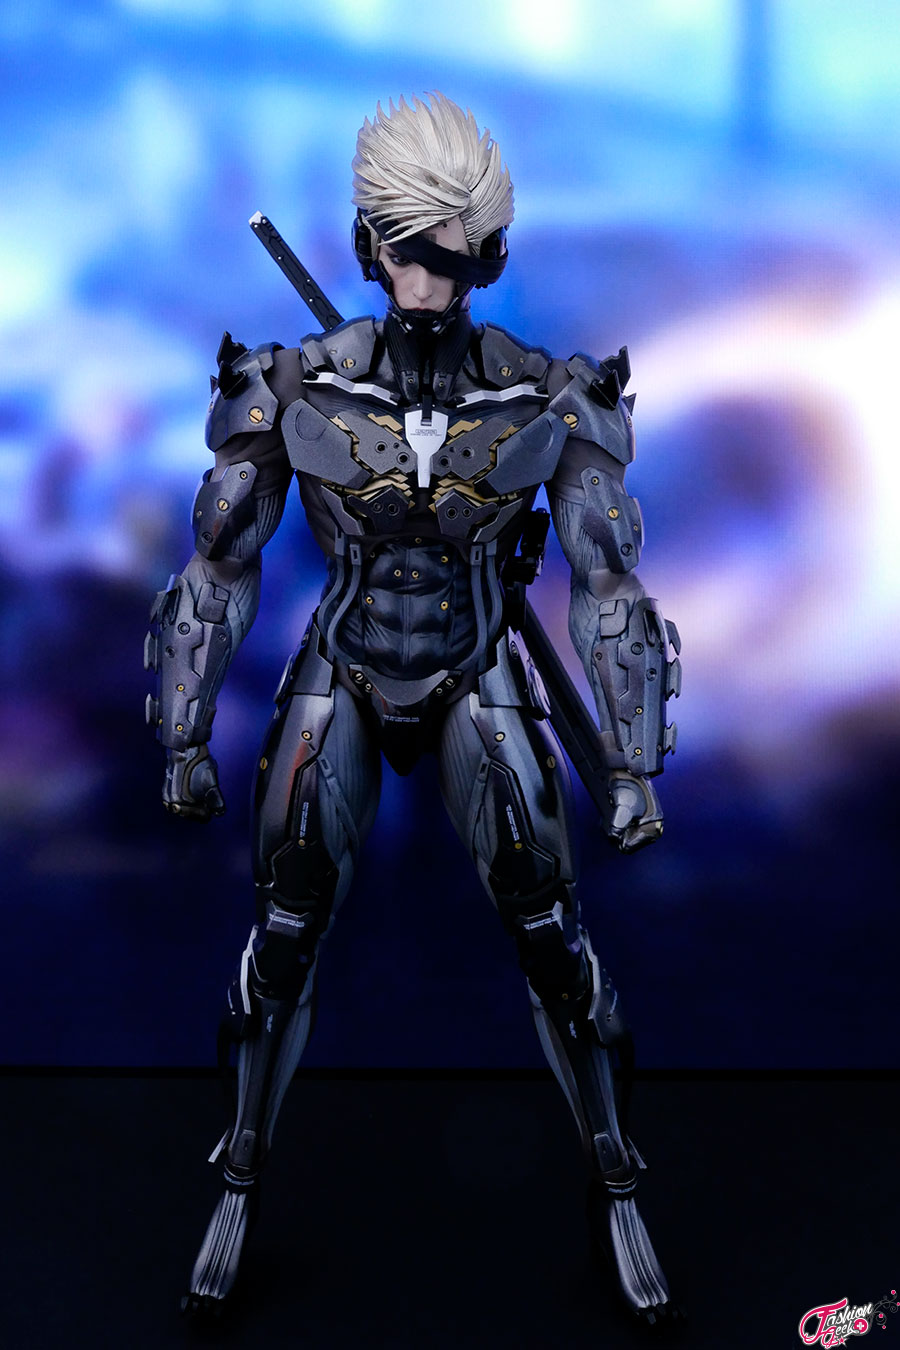 unboxing-raiden-hottoys-MGS-7